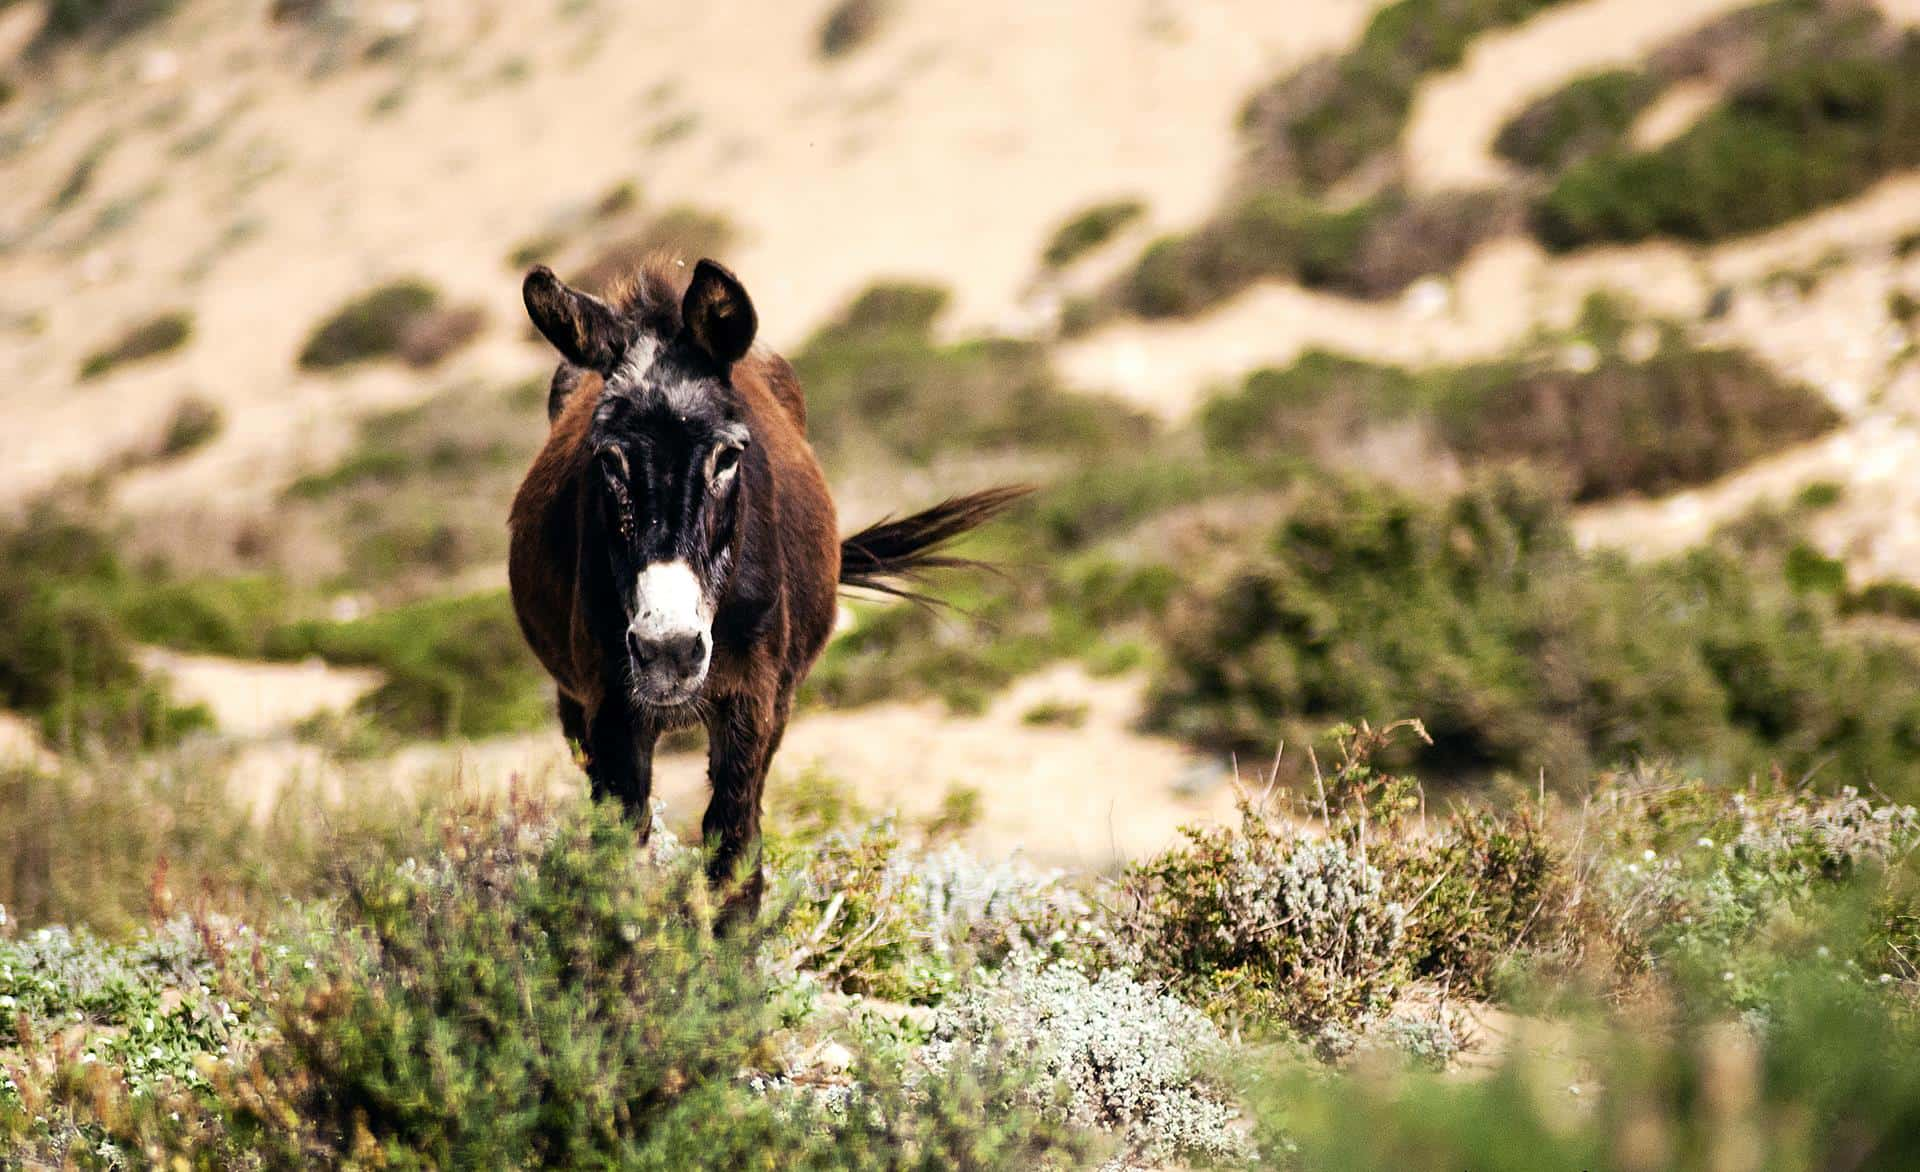 donkey in the montain